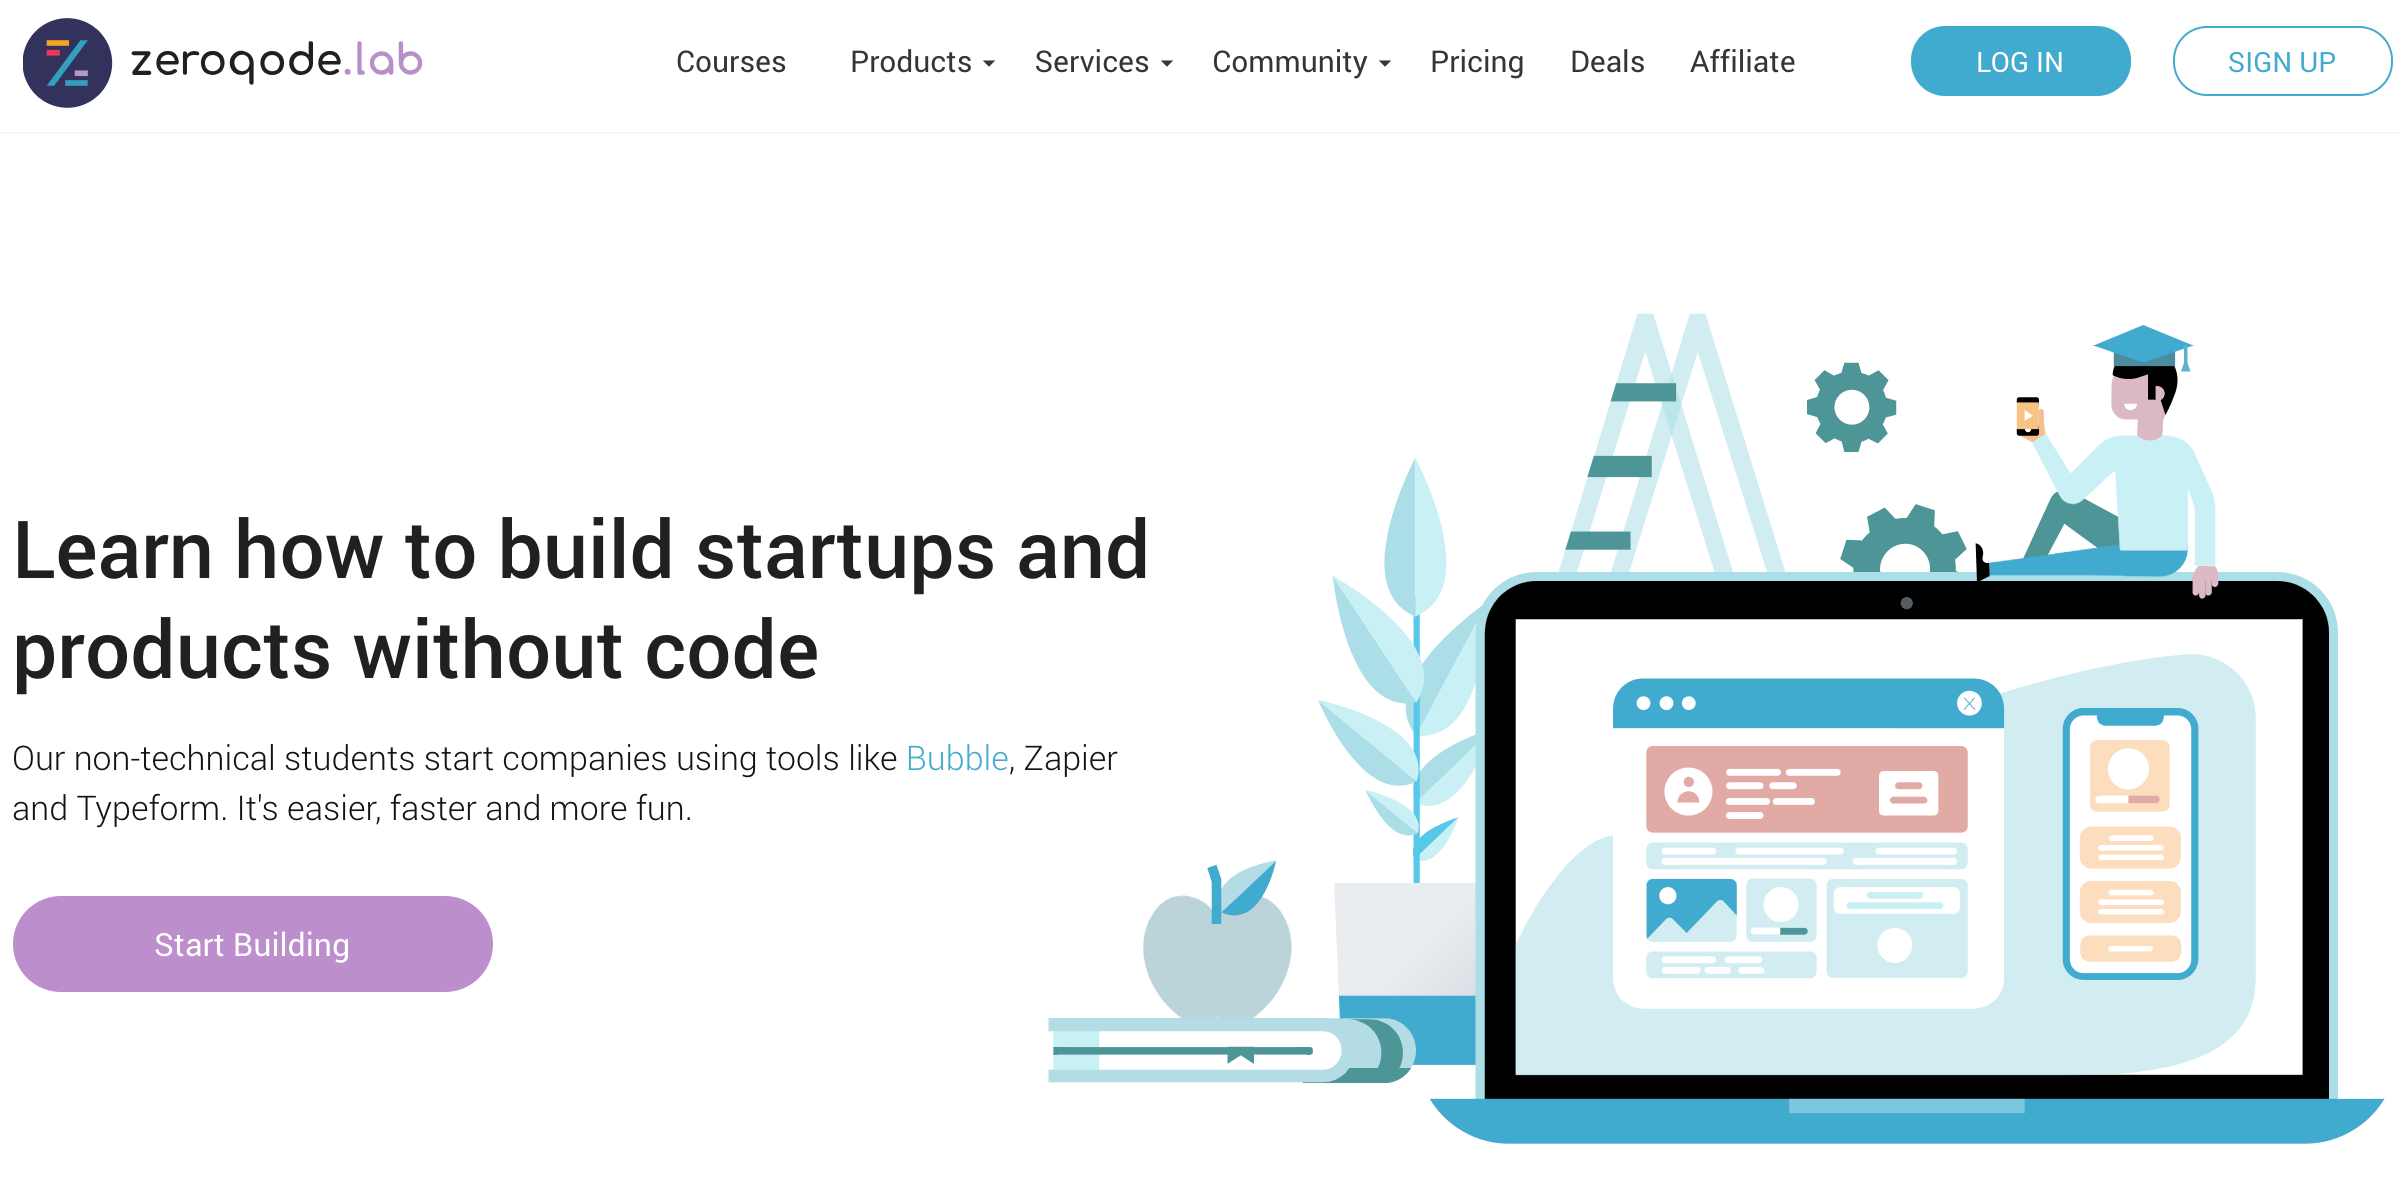 Zeroqode Lab | Build Code-Free Startups and Products